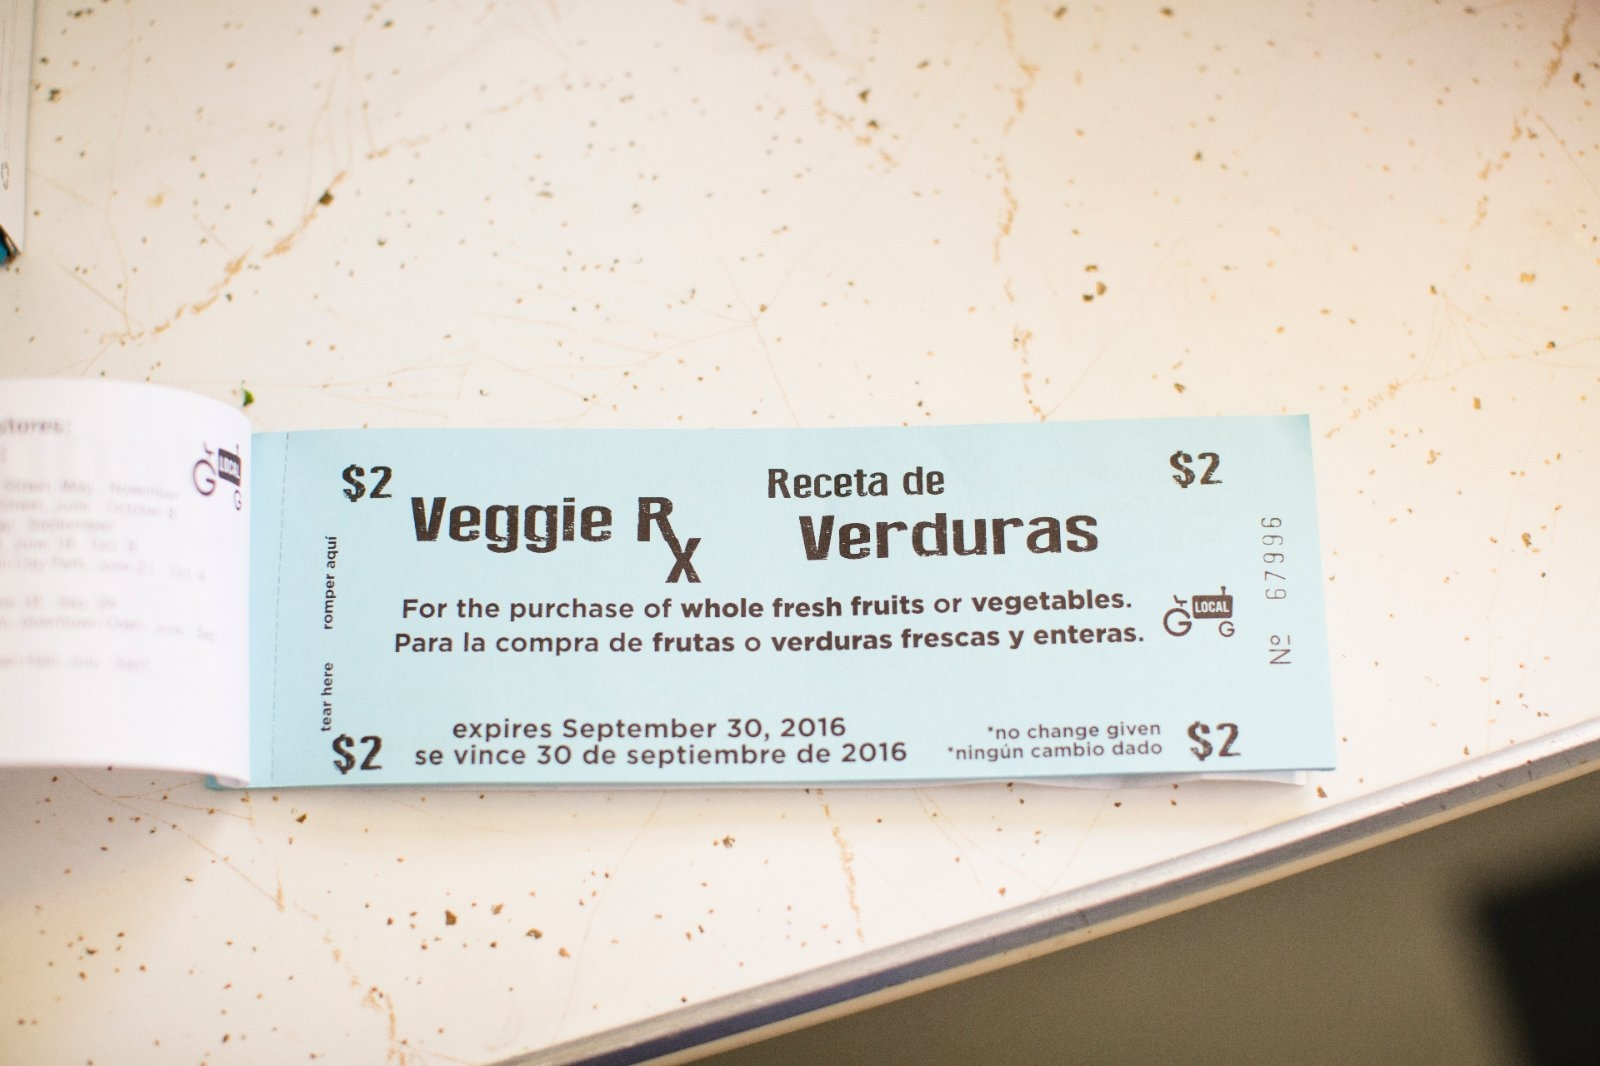 Voucher from doctor to receive free vegetables.